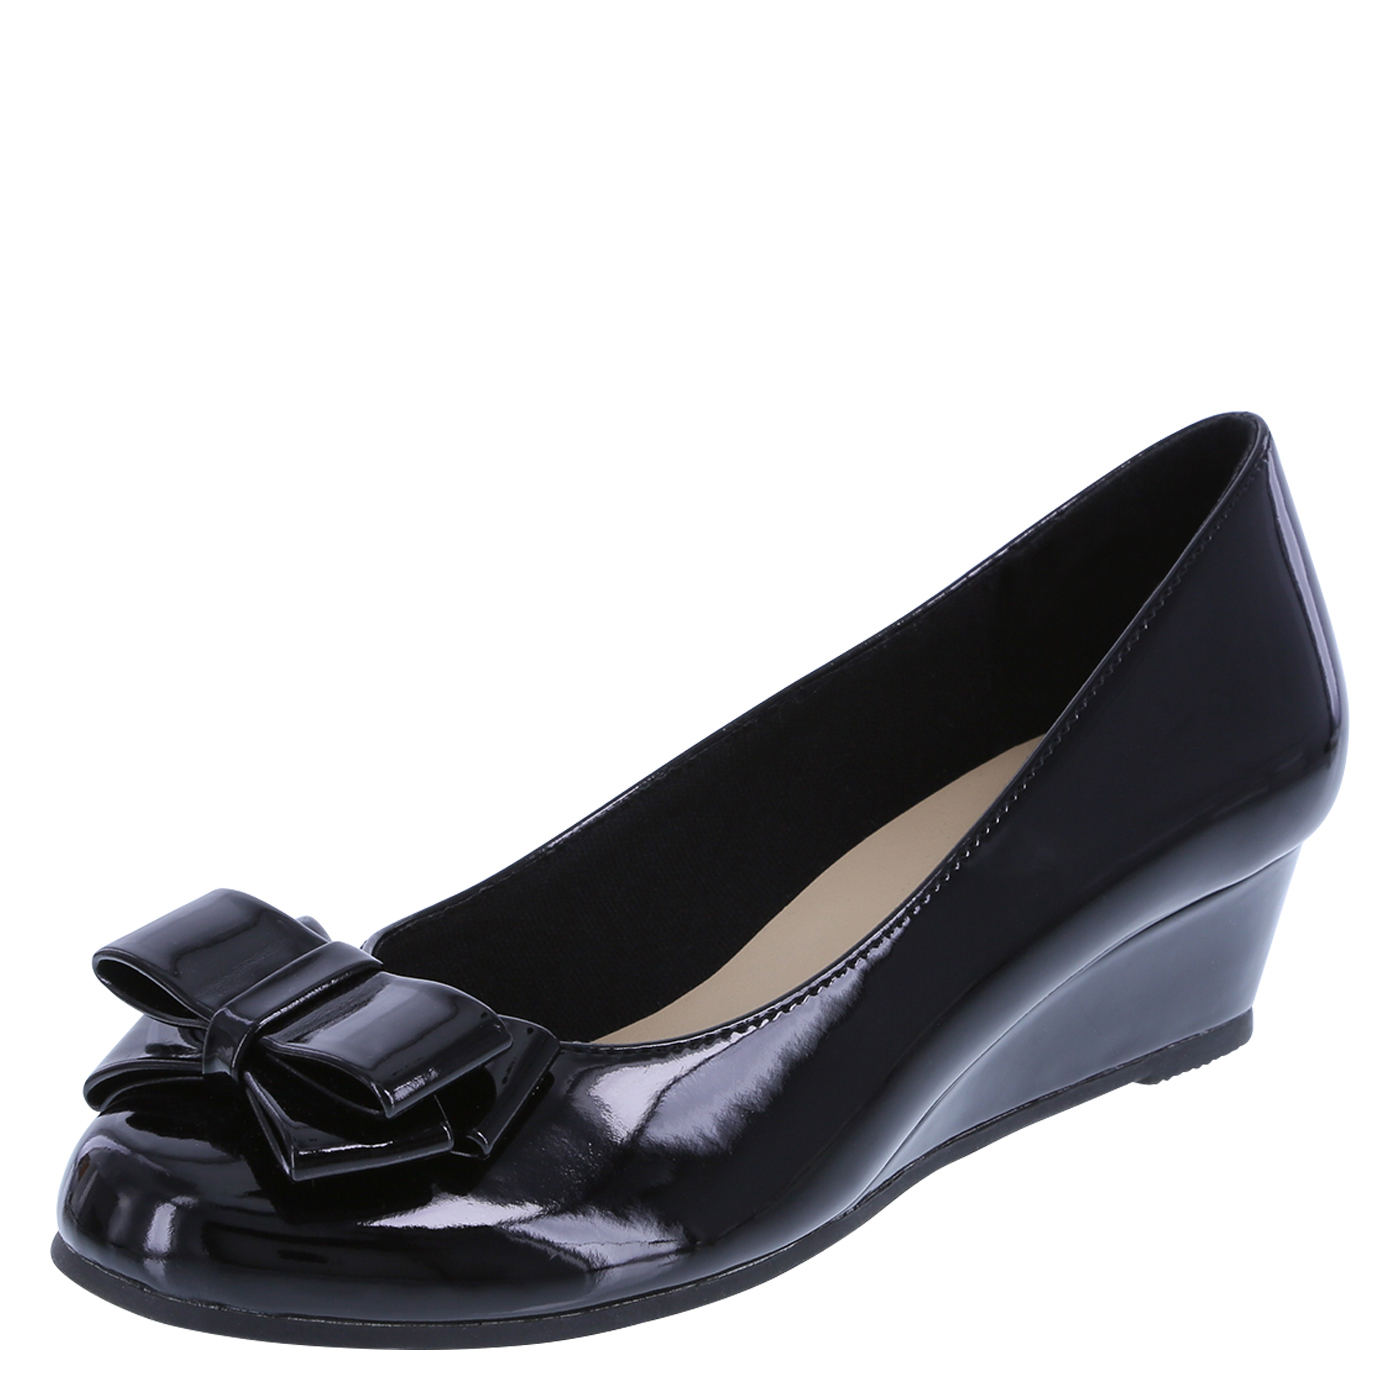 Girls Black Dress Shoes B3pajXv6